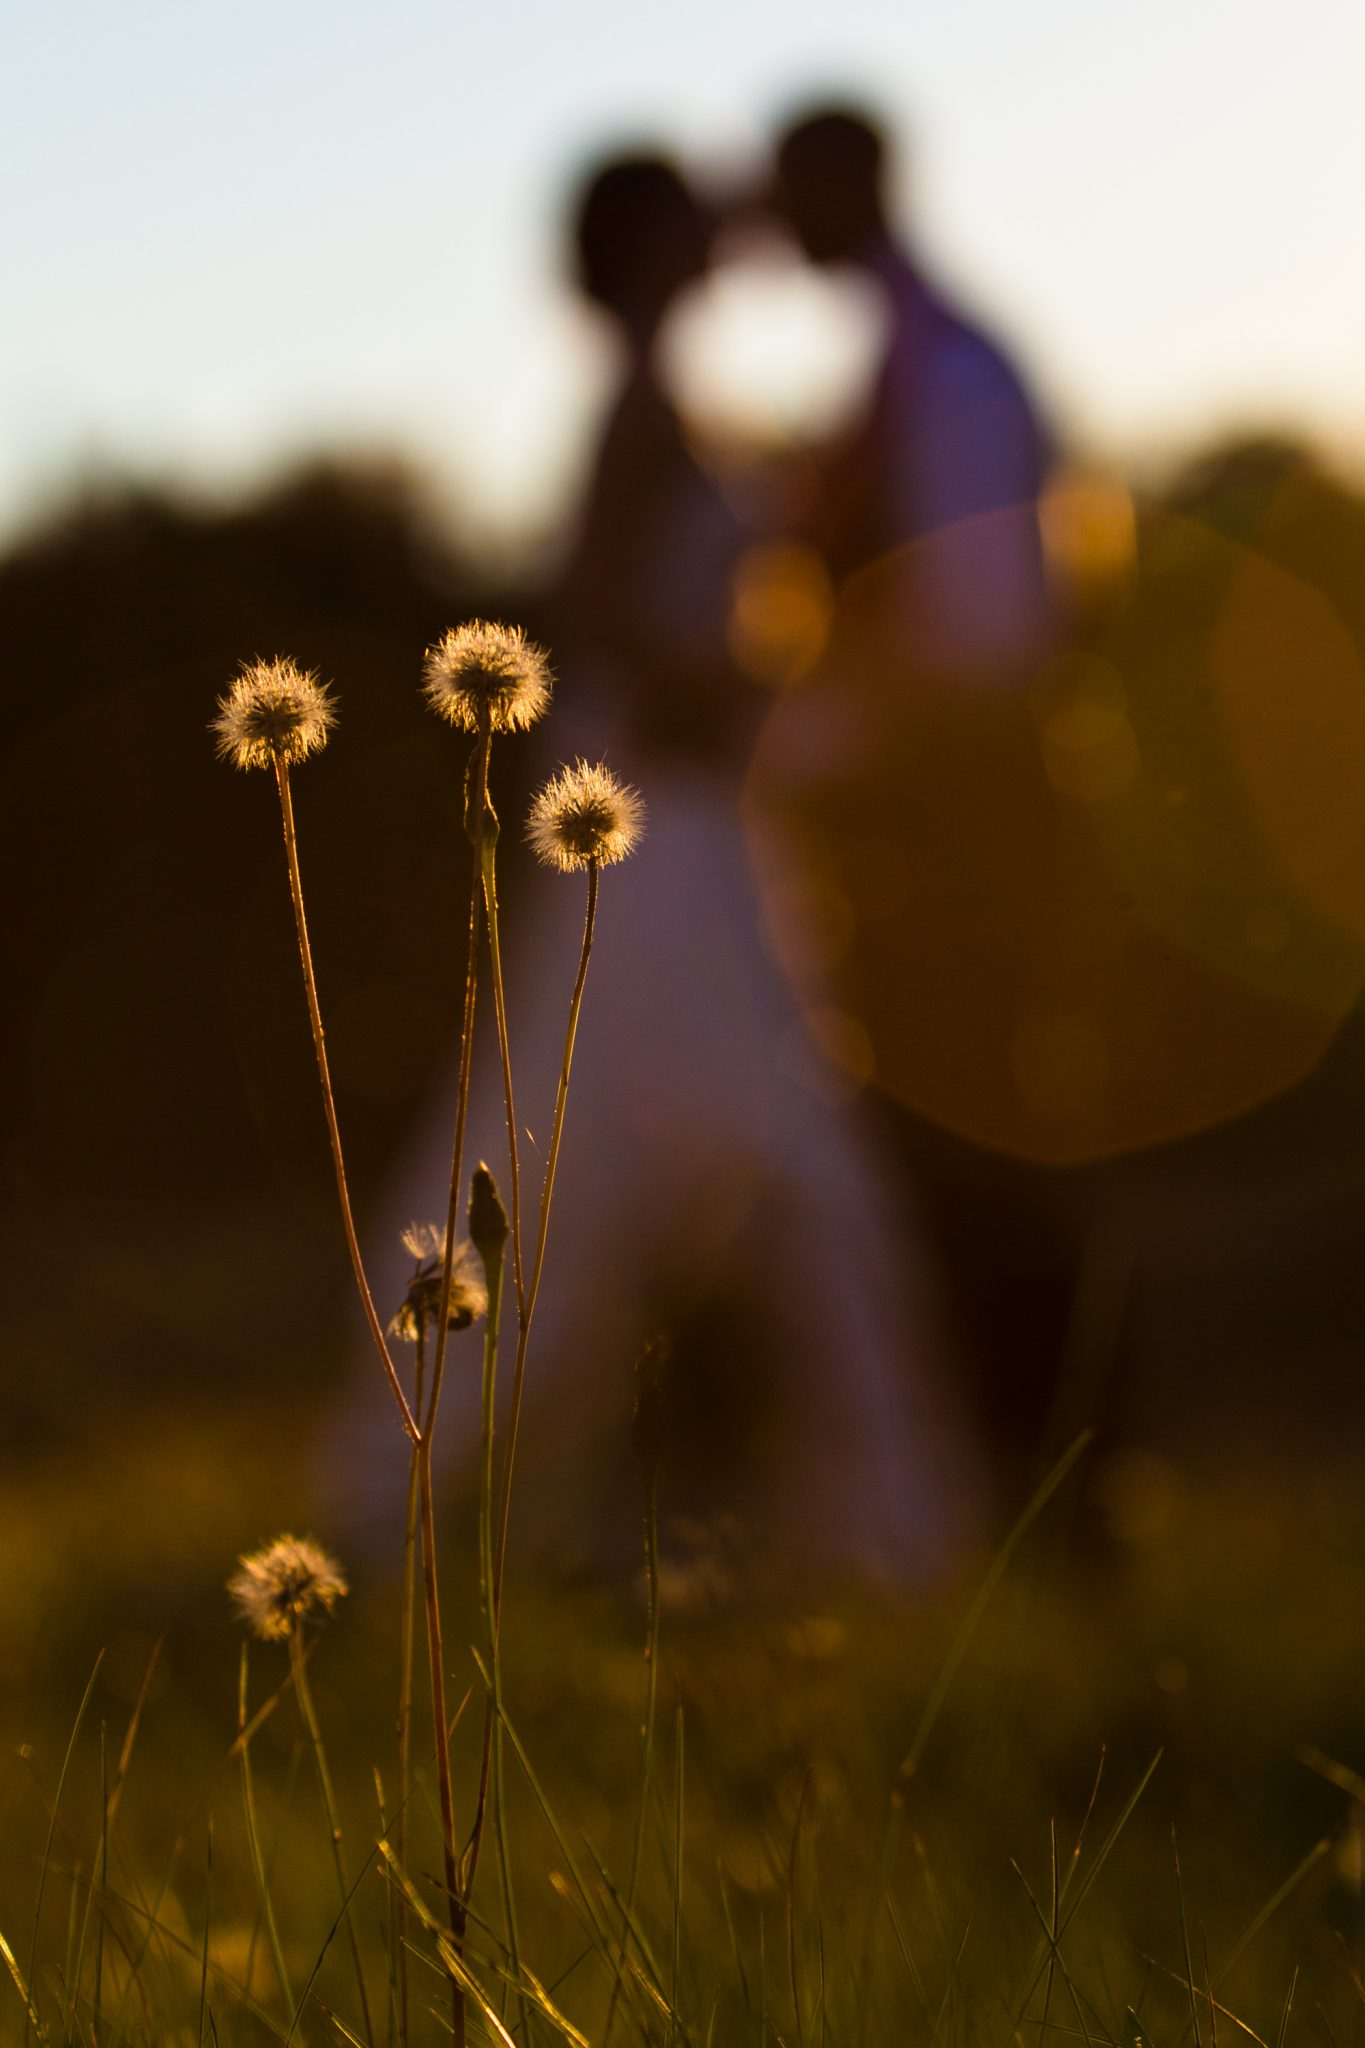 Golden hour light creative shot of flowers and portrait of couple in background in Vermont